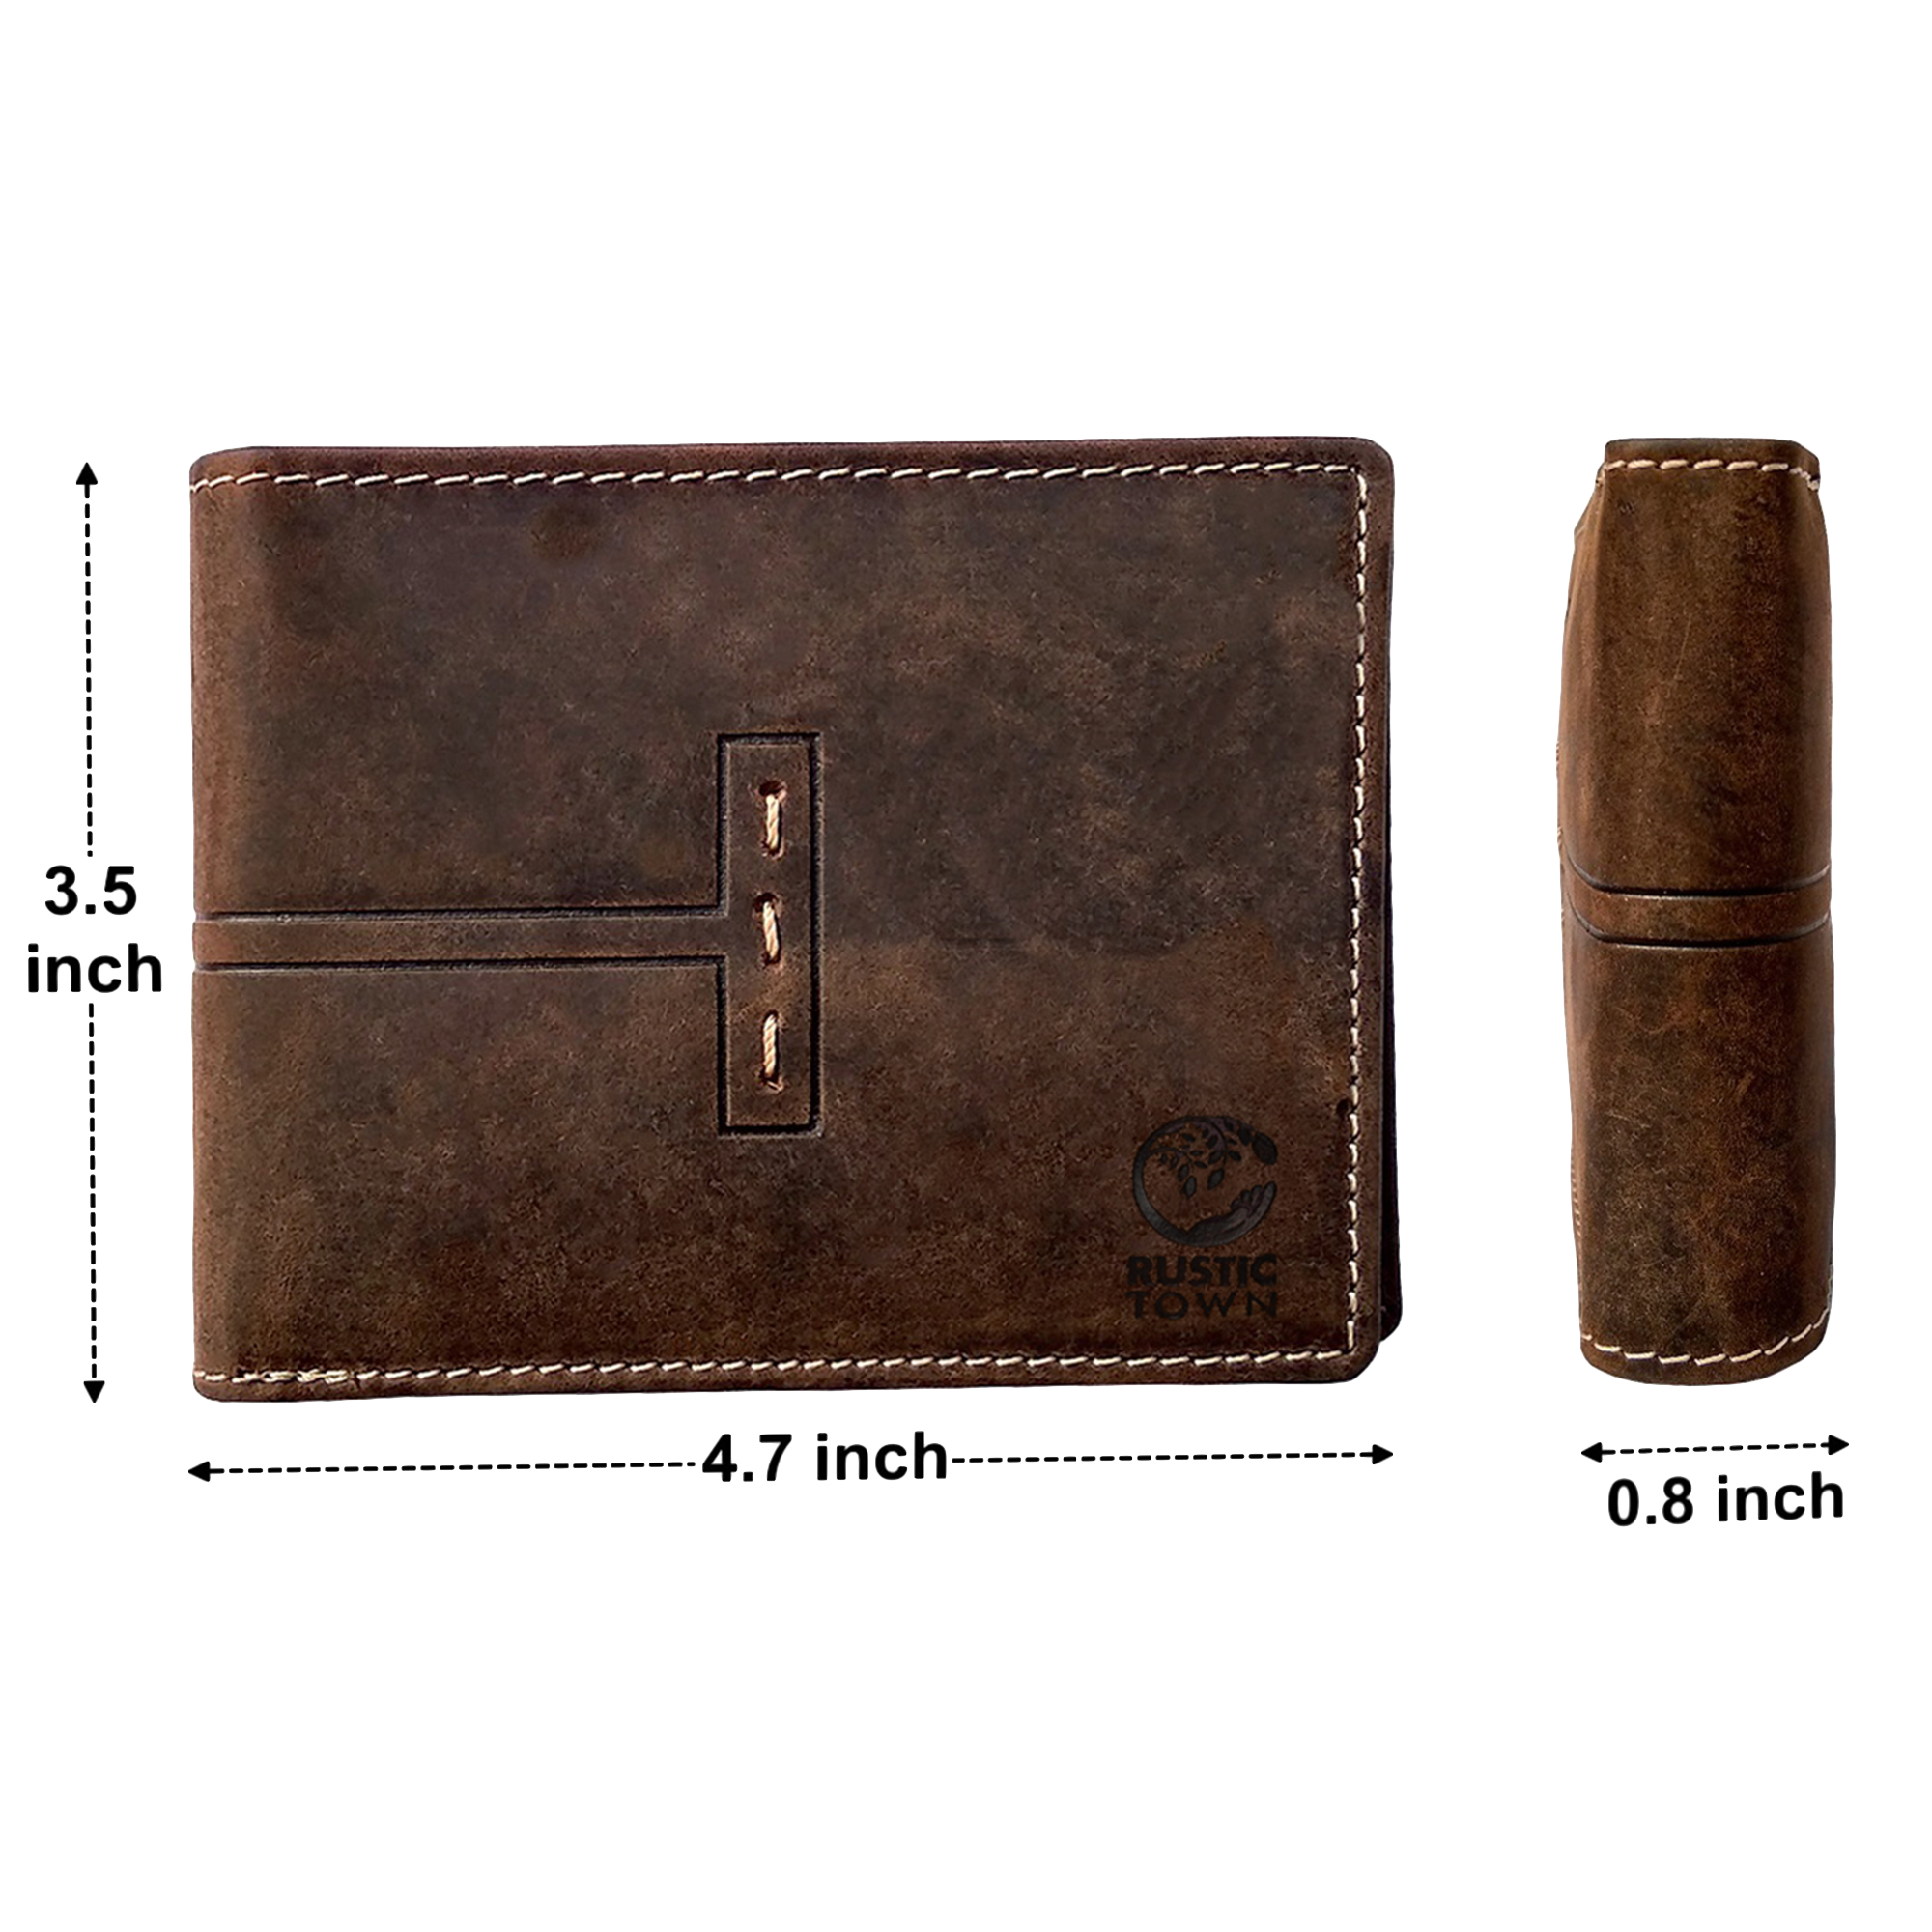 RFID Protected Leather Wallets for Men Bifold Wallet With Coin Pocket (Dark Brown)